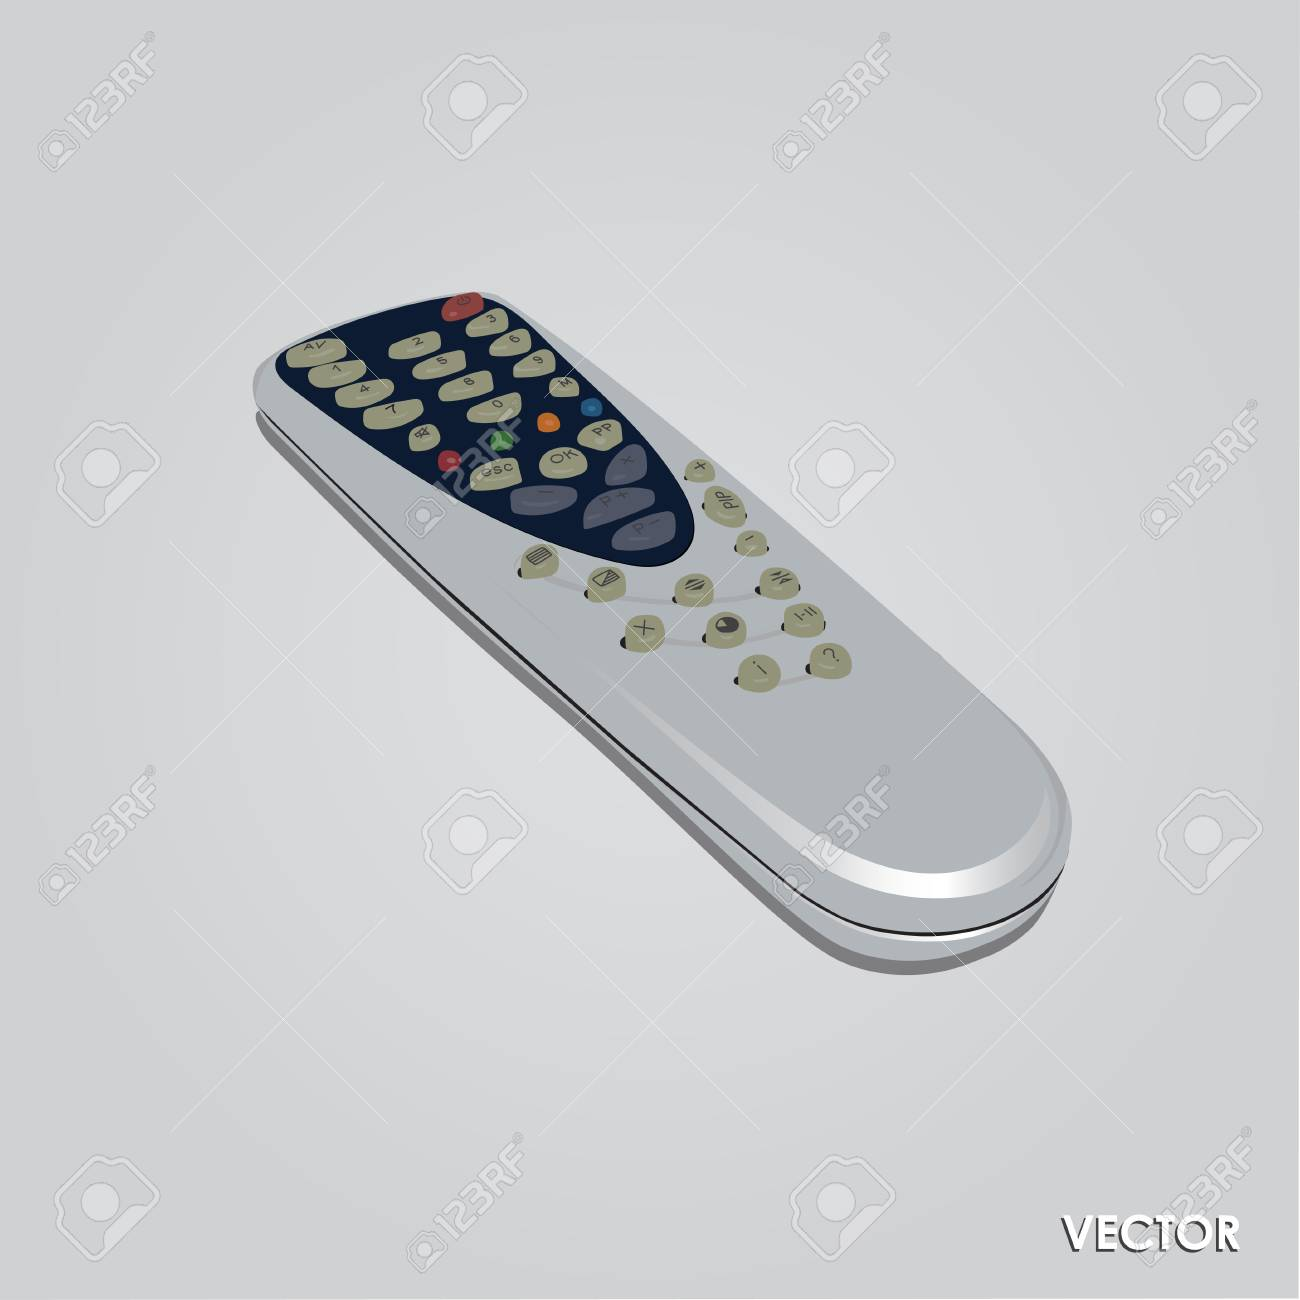 Tv Remote Control Clipart All About Kedsumr Wireless 1 Way On Off Digital Switch 110v For Source Illustration Of Isolated Gray Background